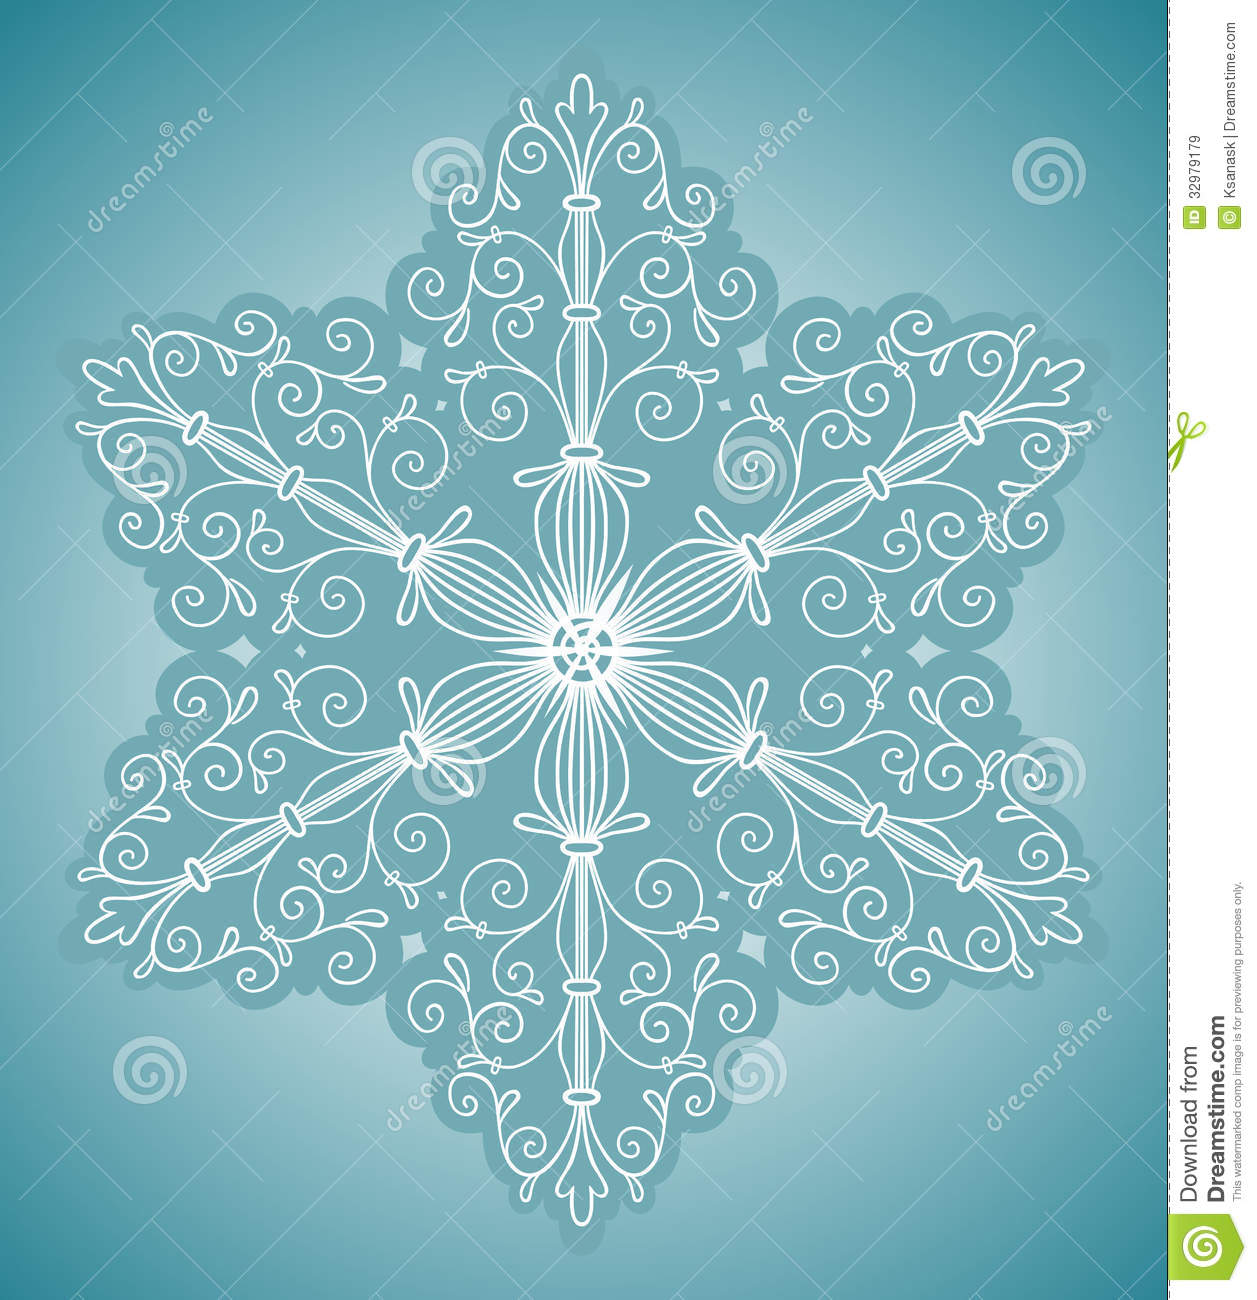 Spur Art Design Your Line : Green snowflake rounds clipart suggest